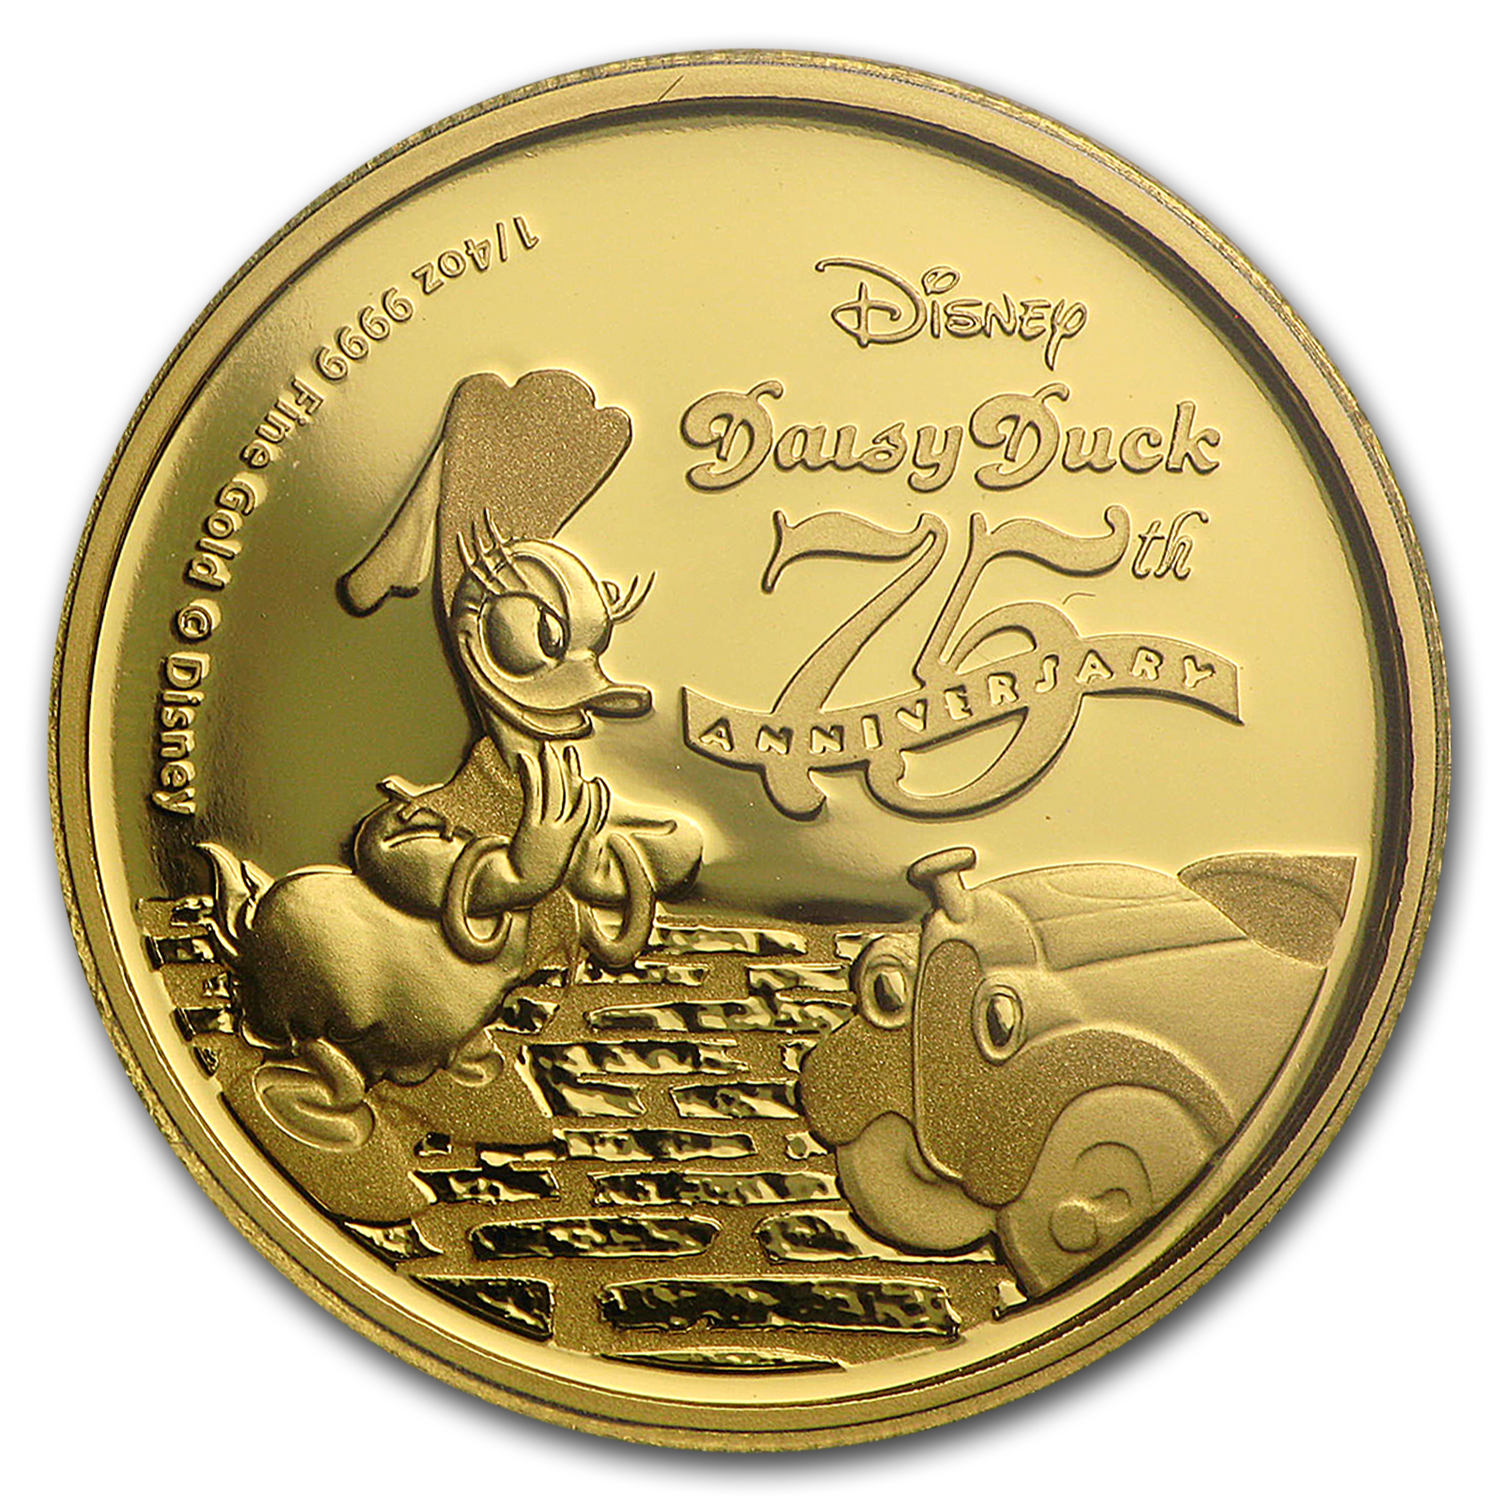 2015 Niue 1/4 oz Proof Gold $25 Disney Daisy Duck